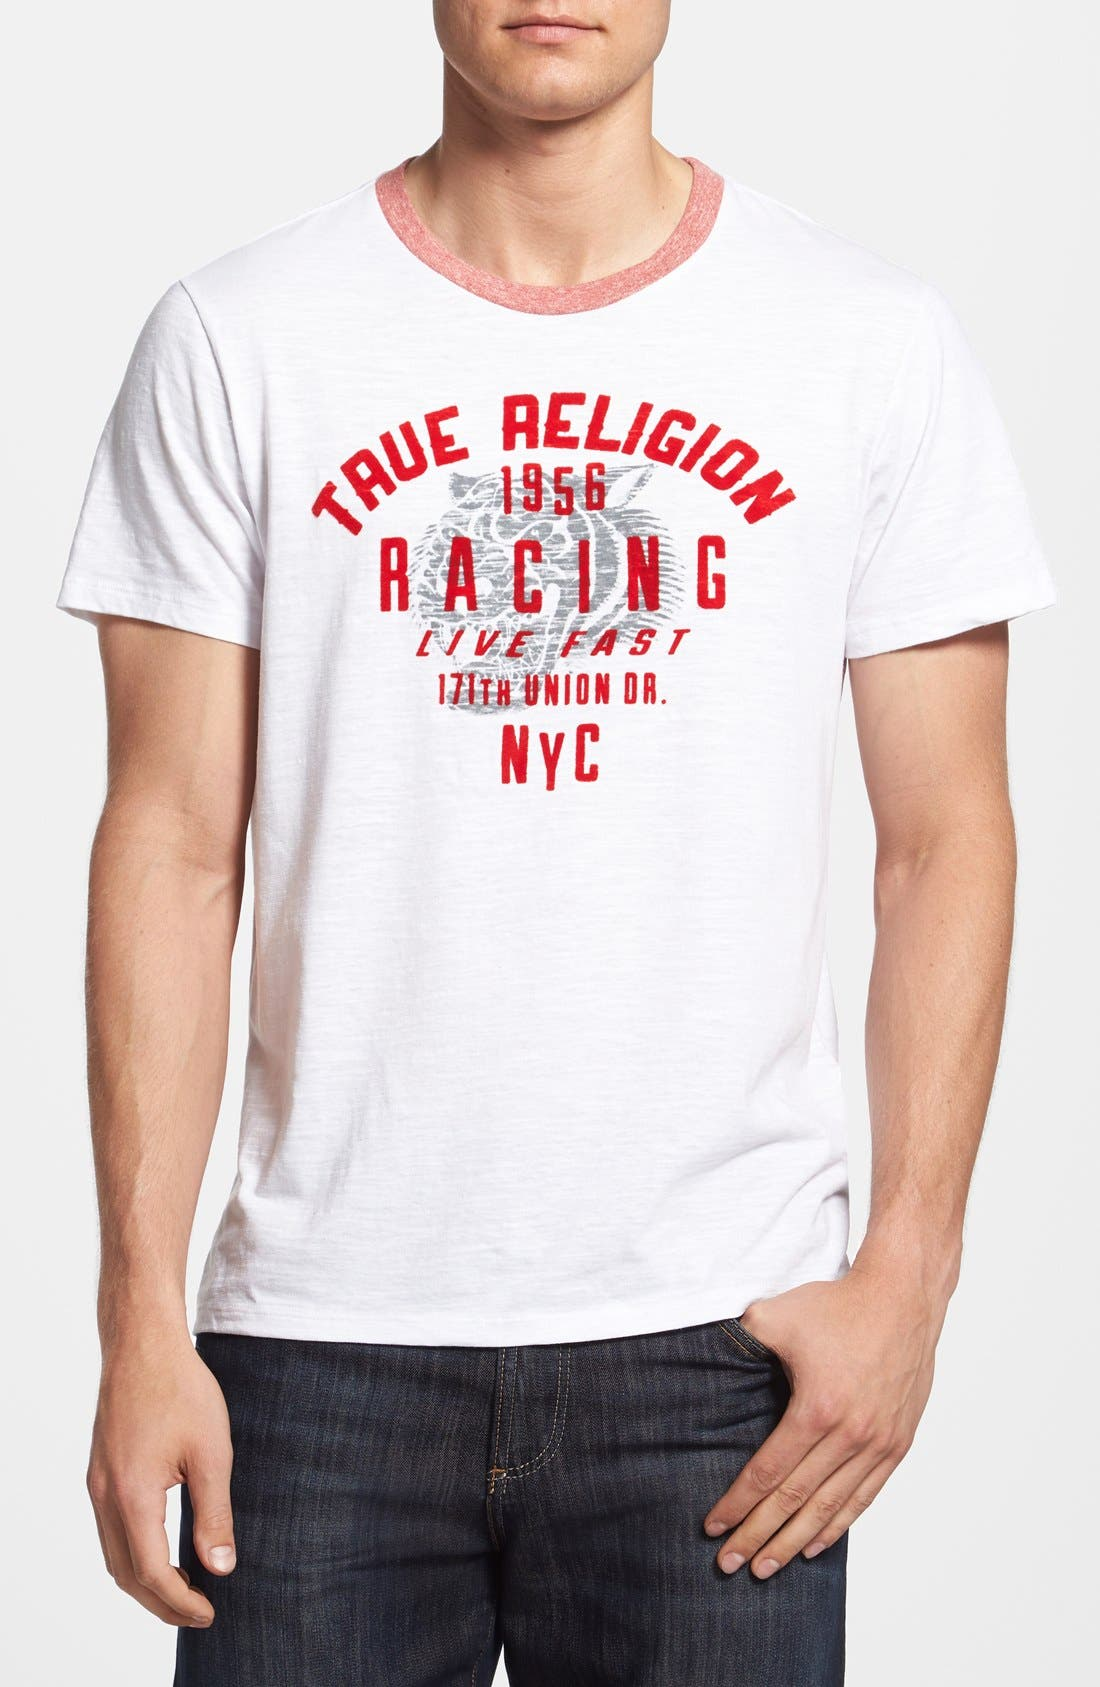 Alternate Image 1 Selected - True Religion Brand Jeans '1956 Races' Graphic T-Shirt